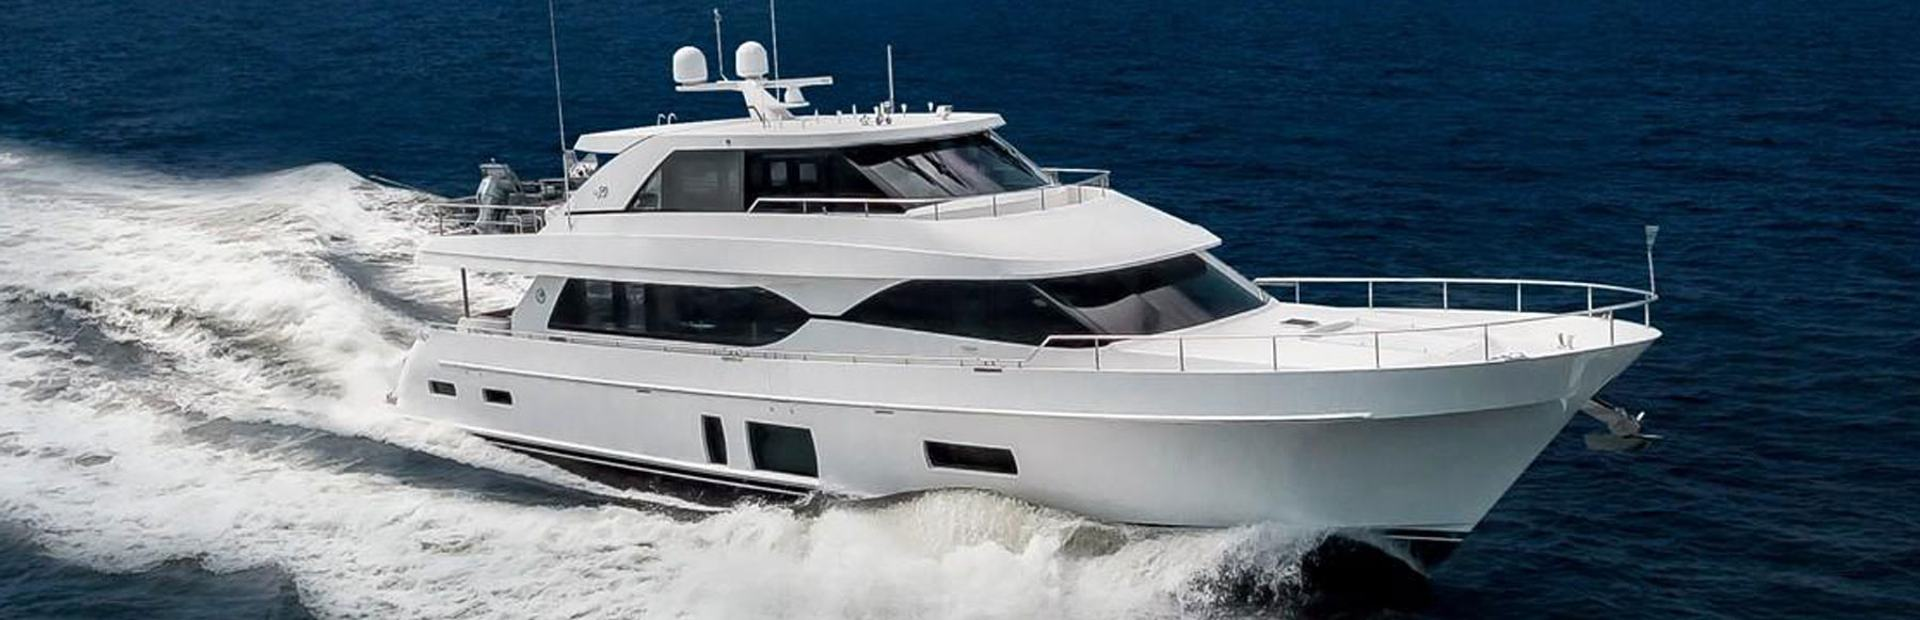 90 Skylounge Yacht Charter